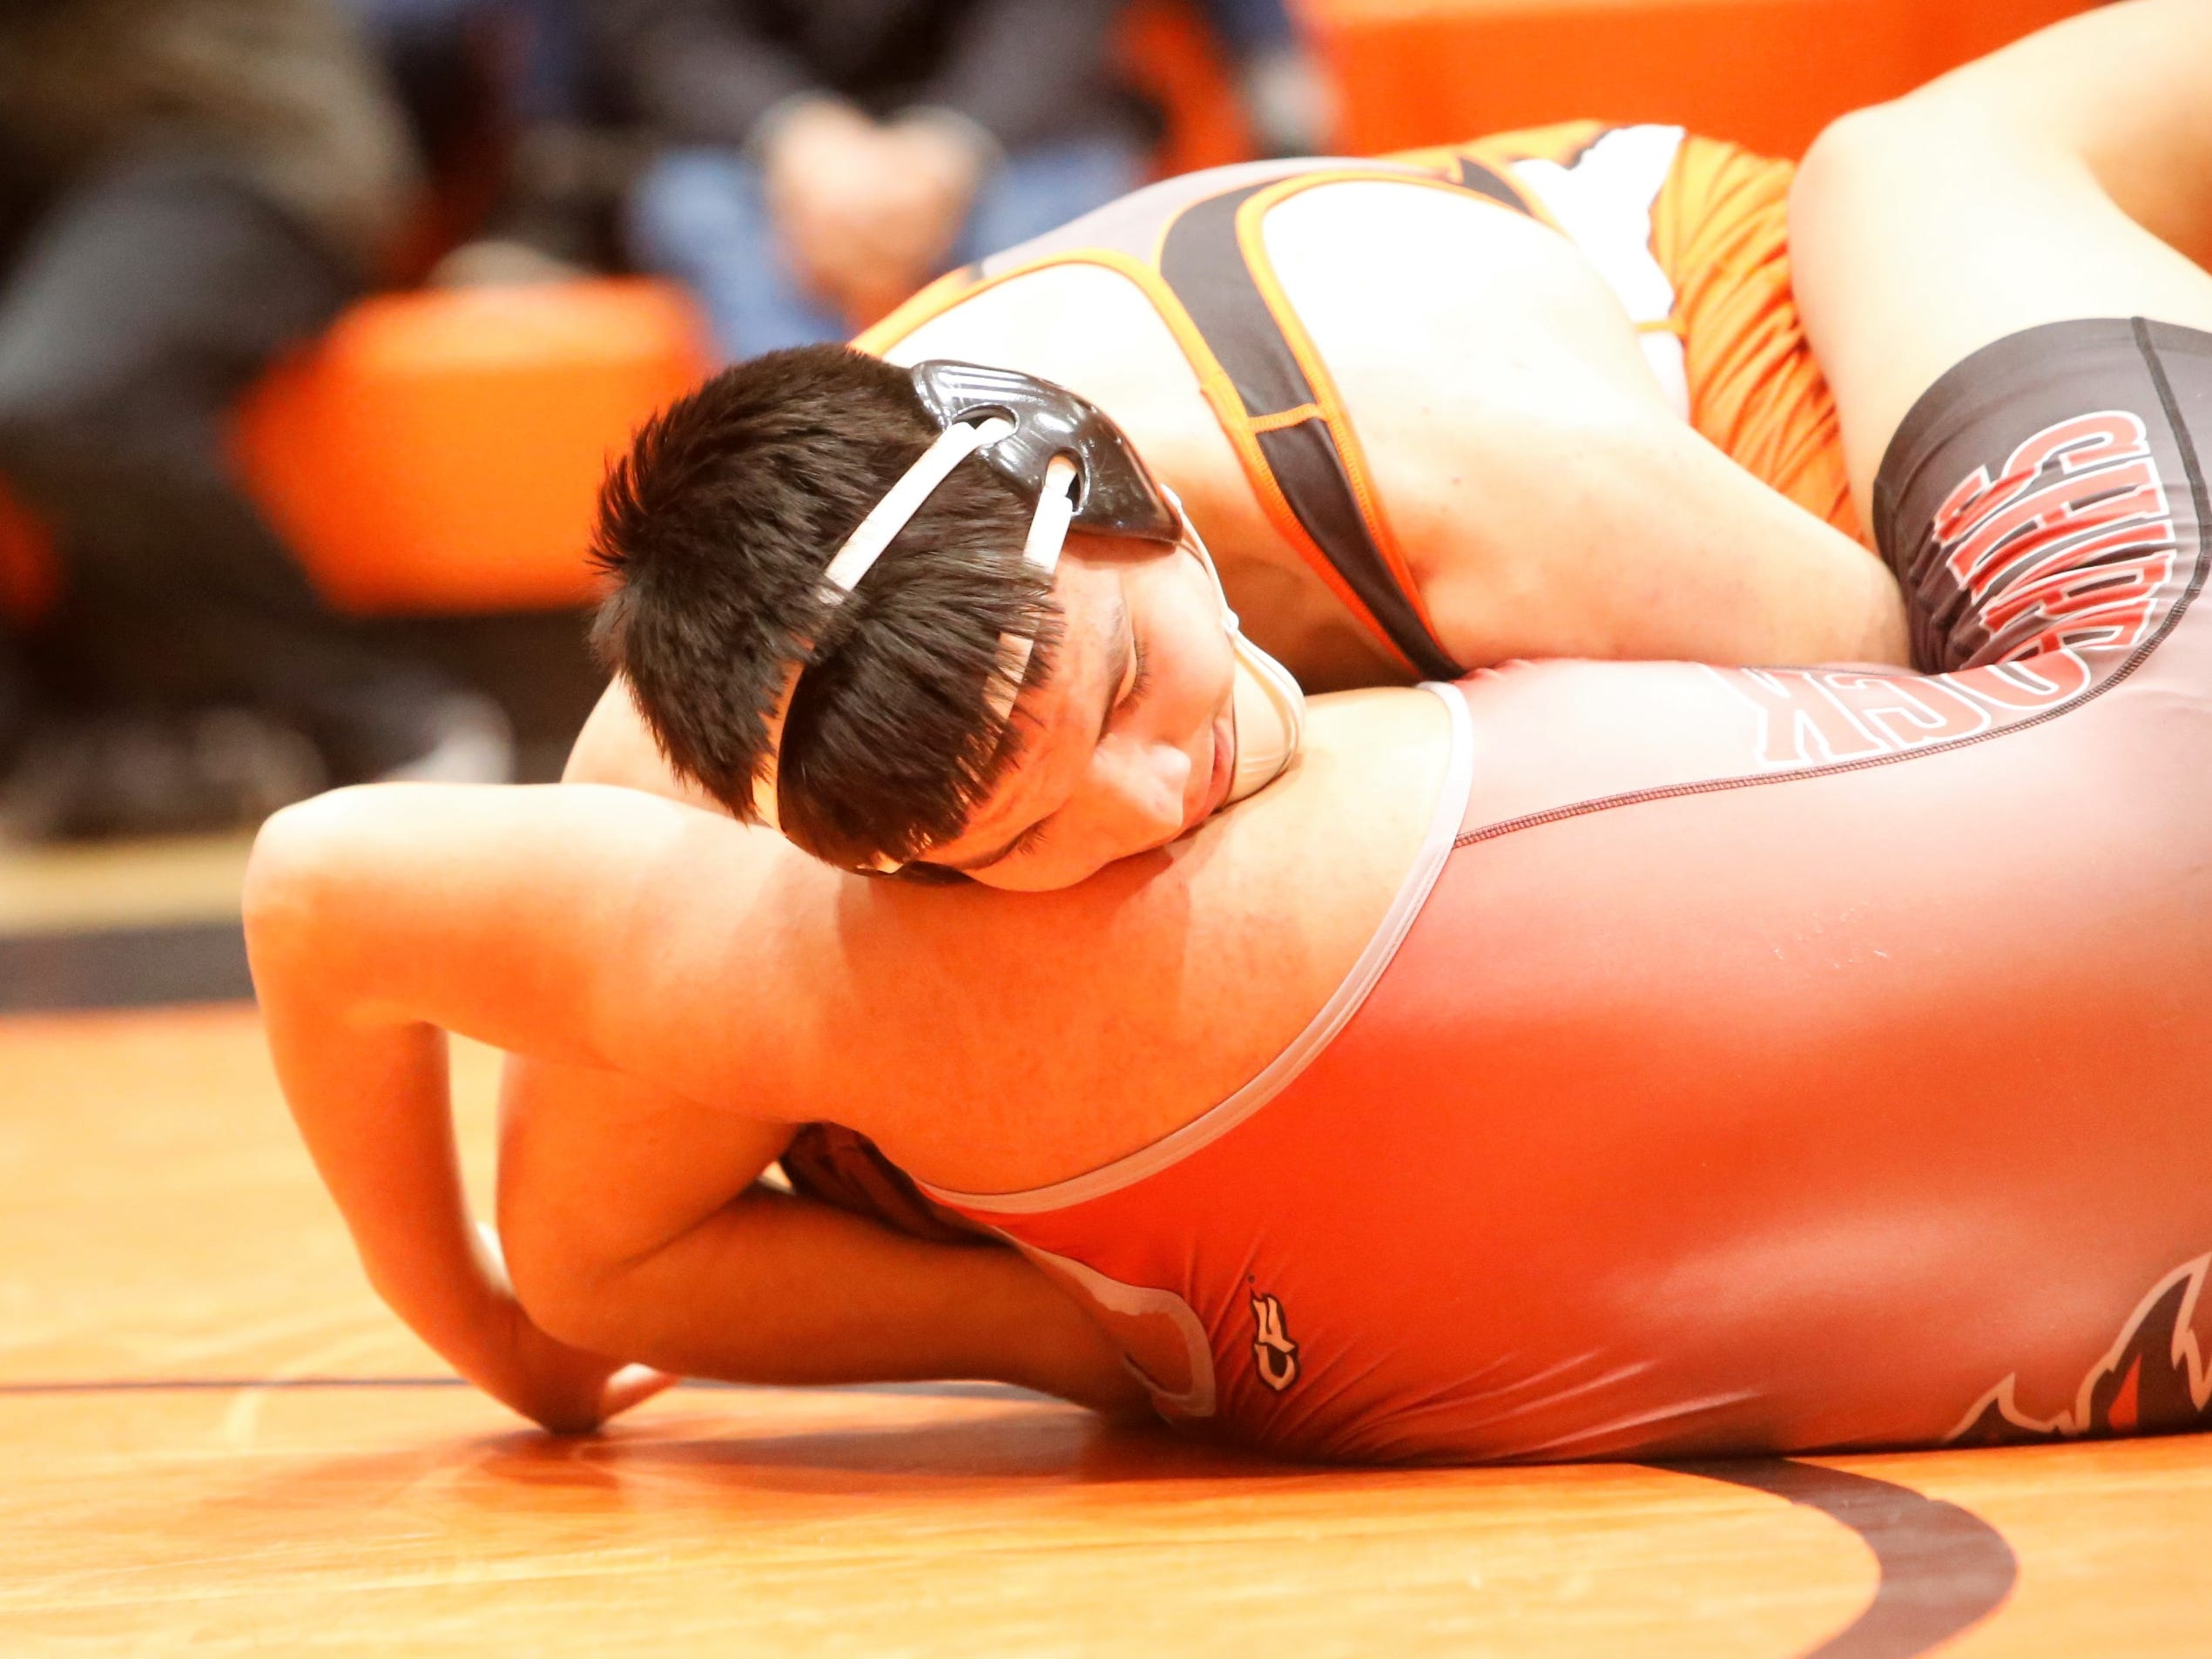 Aztec's Caleb Varzeas grabs hold of Shiprock's Jaylon Begay in a 195-pound division match during the District 1-4A wrestling championships at Lillywhite Gym in Aztec. Varzeas took second place in his division.